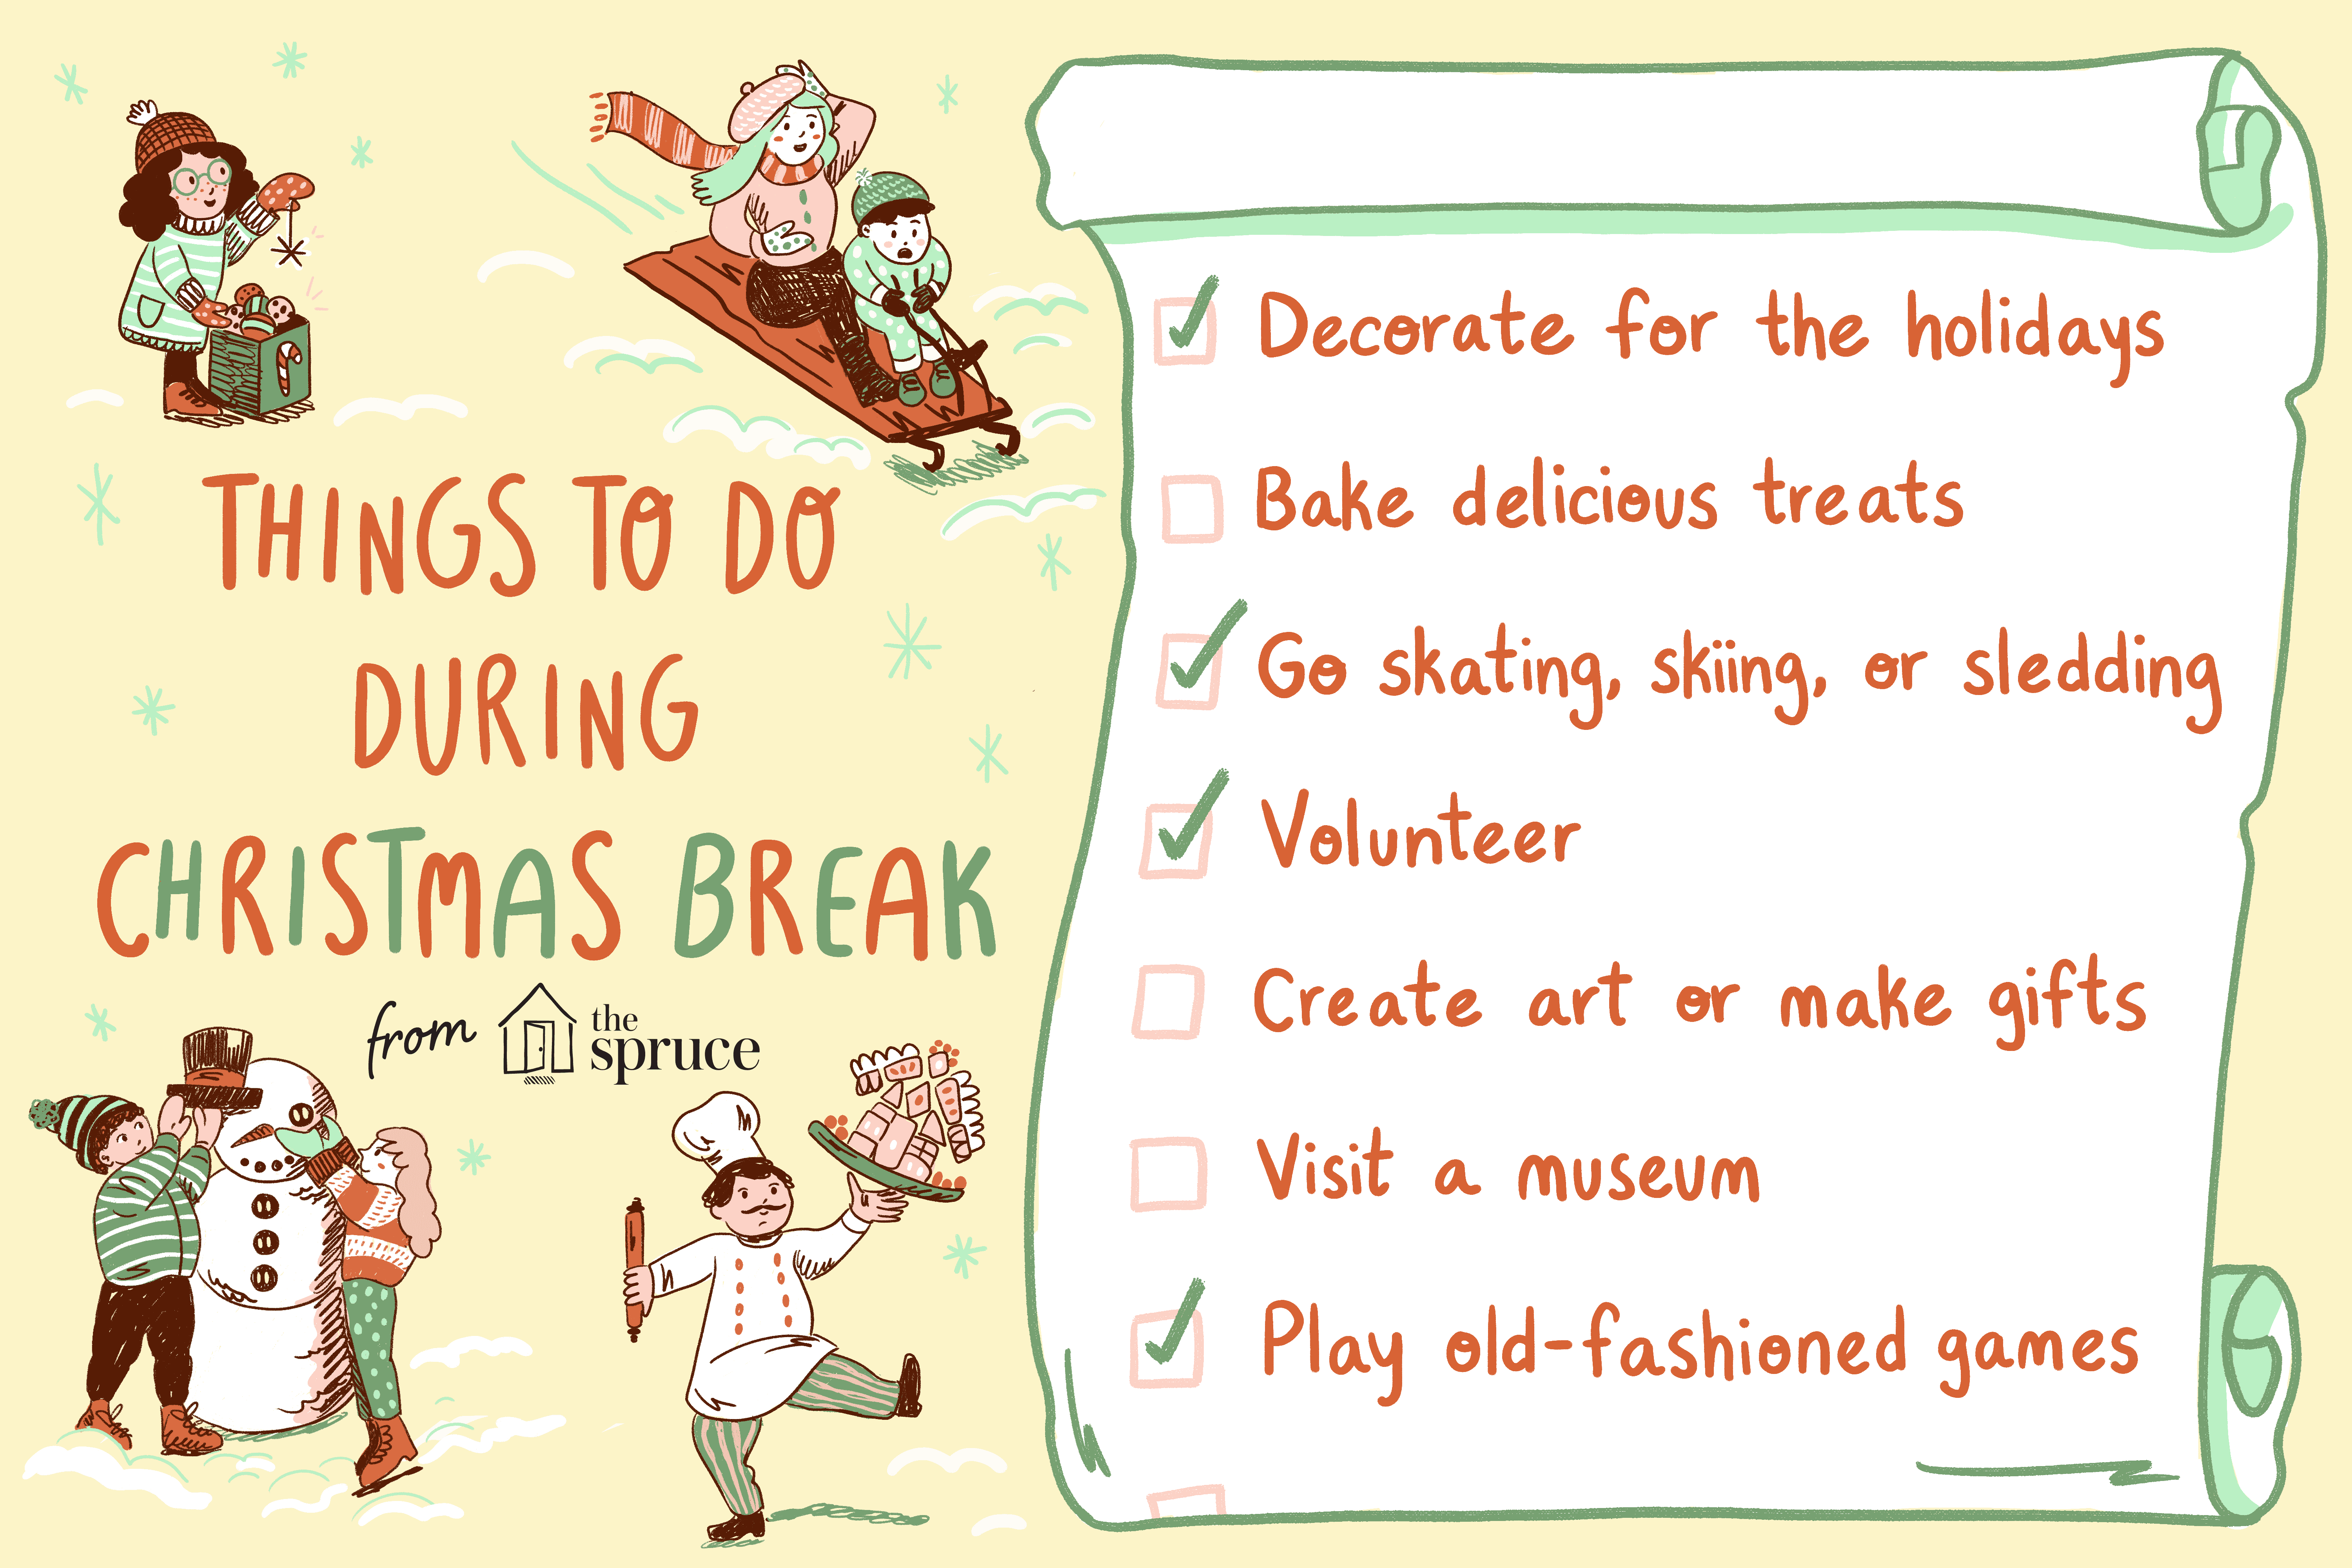 Christmas Break Things to Do Holiday Activities and Ideas